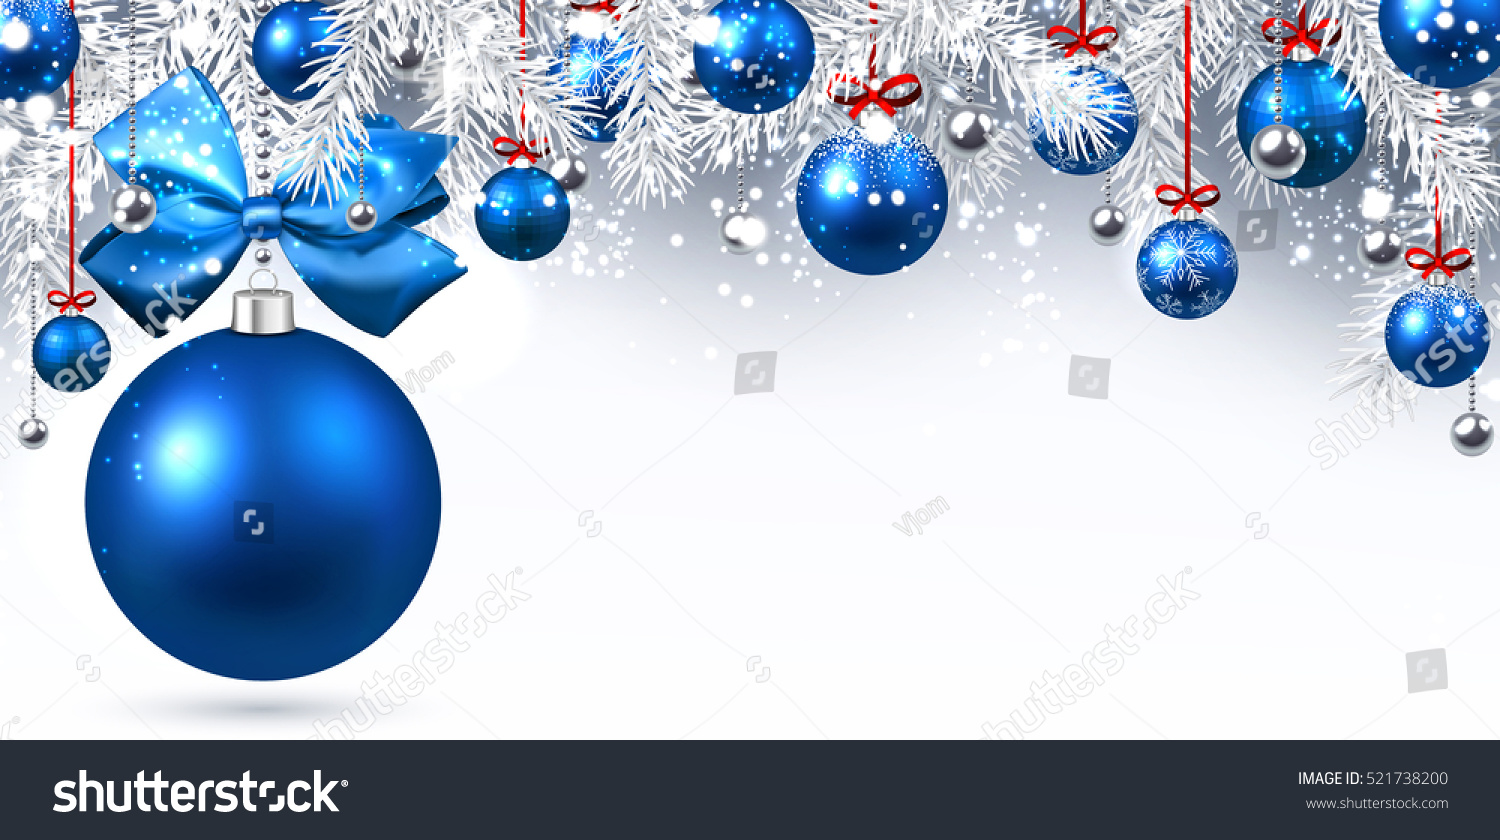 new year banner with blue christmas balls vector illustration - Christmas Blue